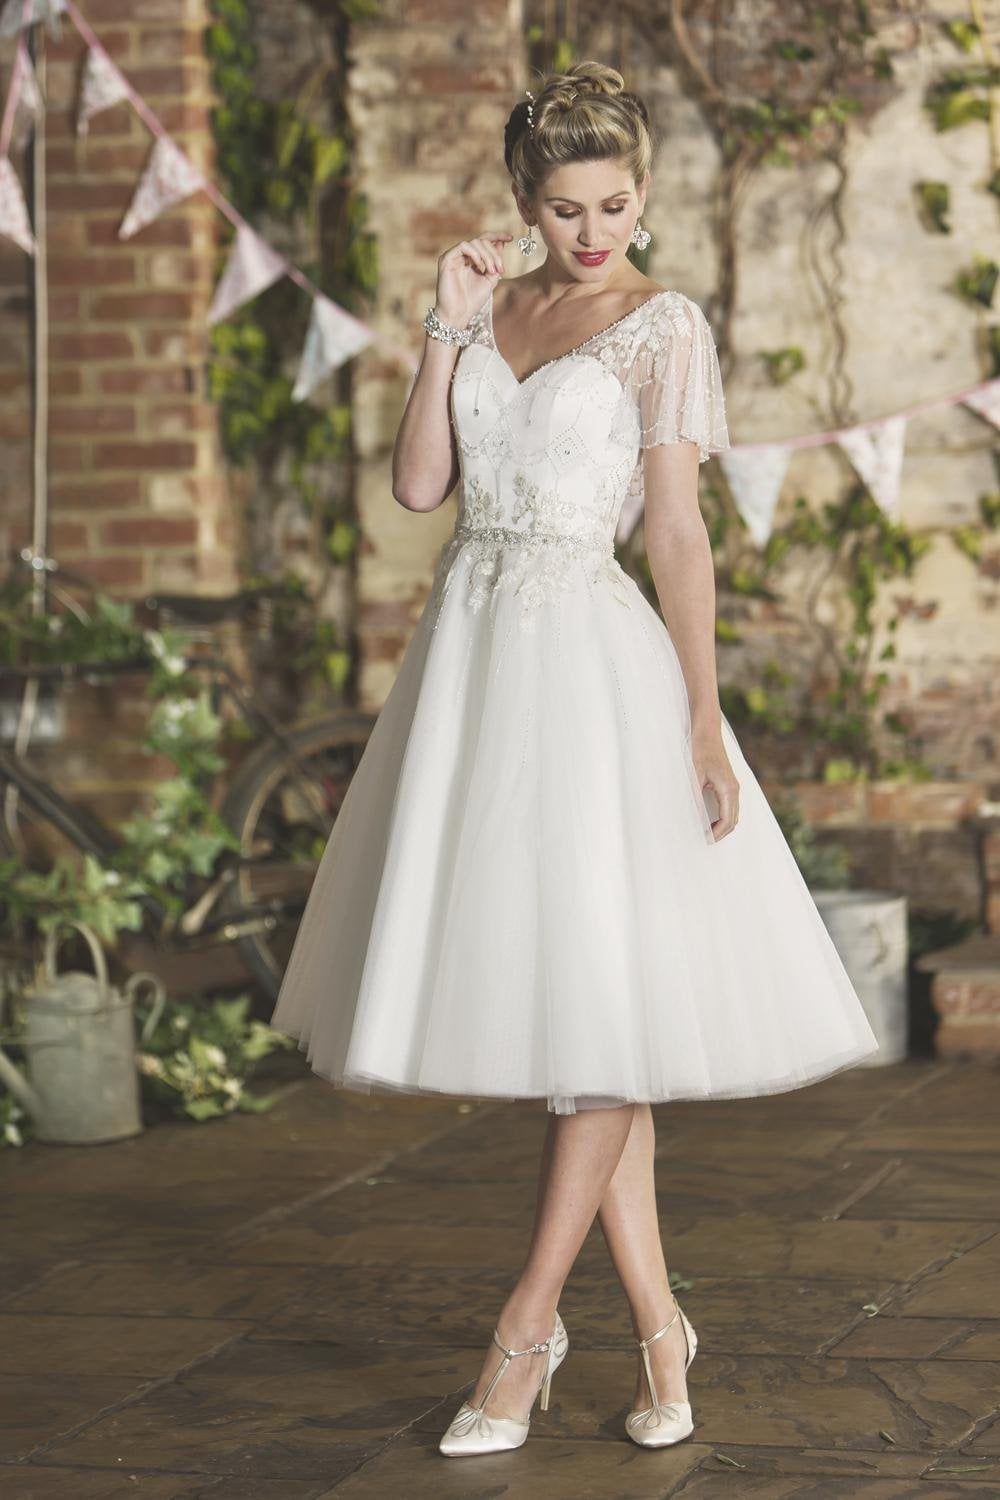 Chloe 1950 S Vintage Tea Length Wedding Dress With Embroidered Cap Sleeve And Sweethear Bodice